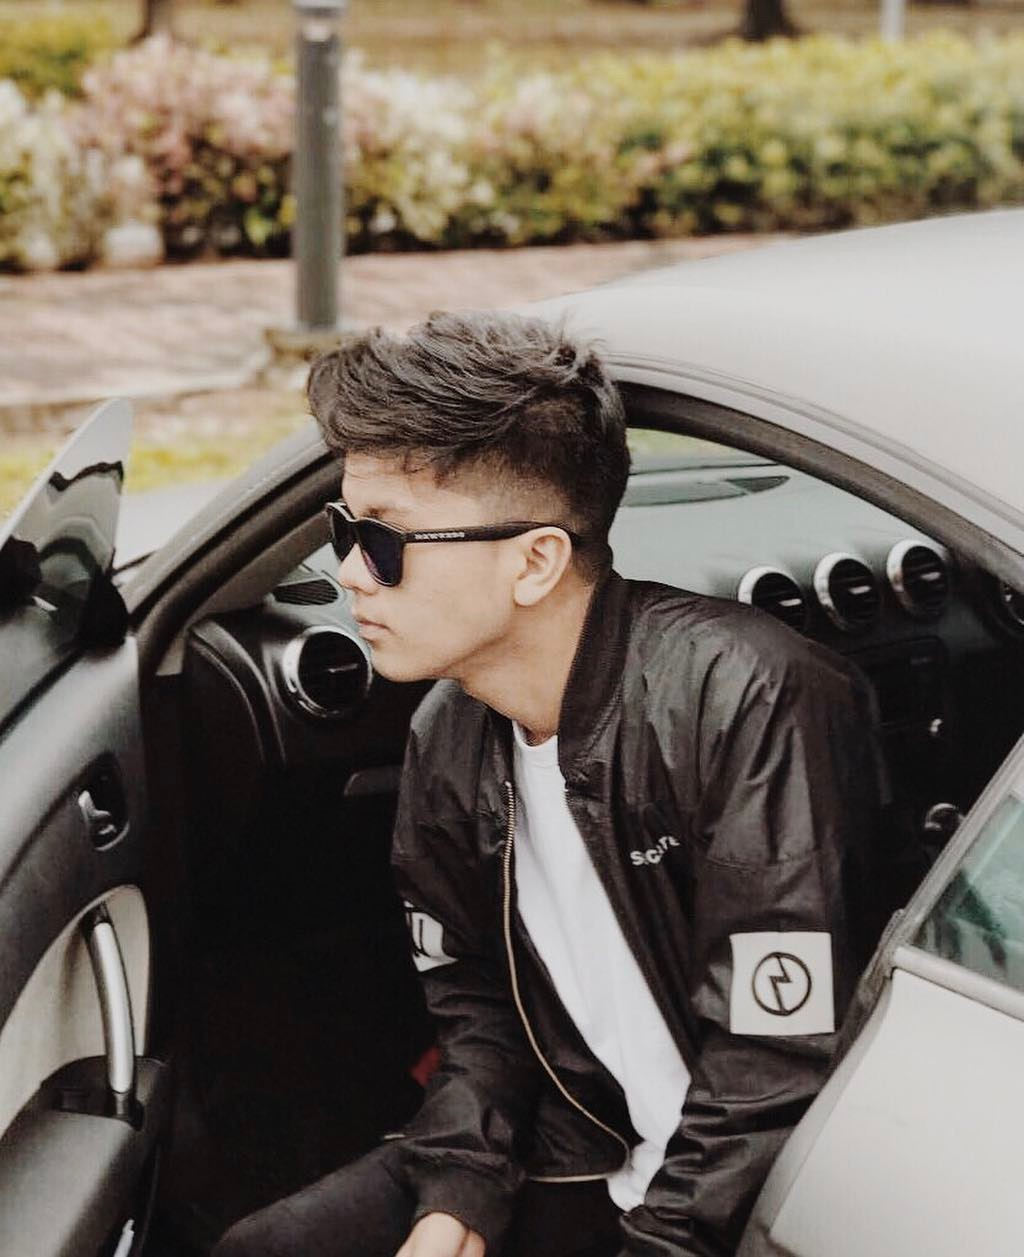 Image from @haqiemrusli98_/Instagram